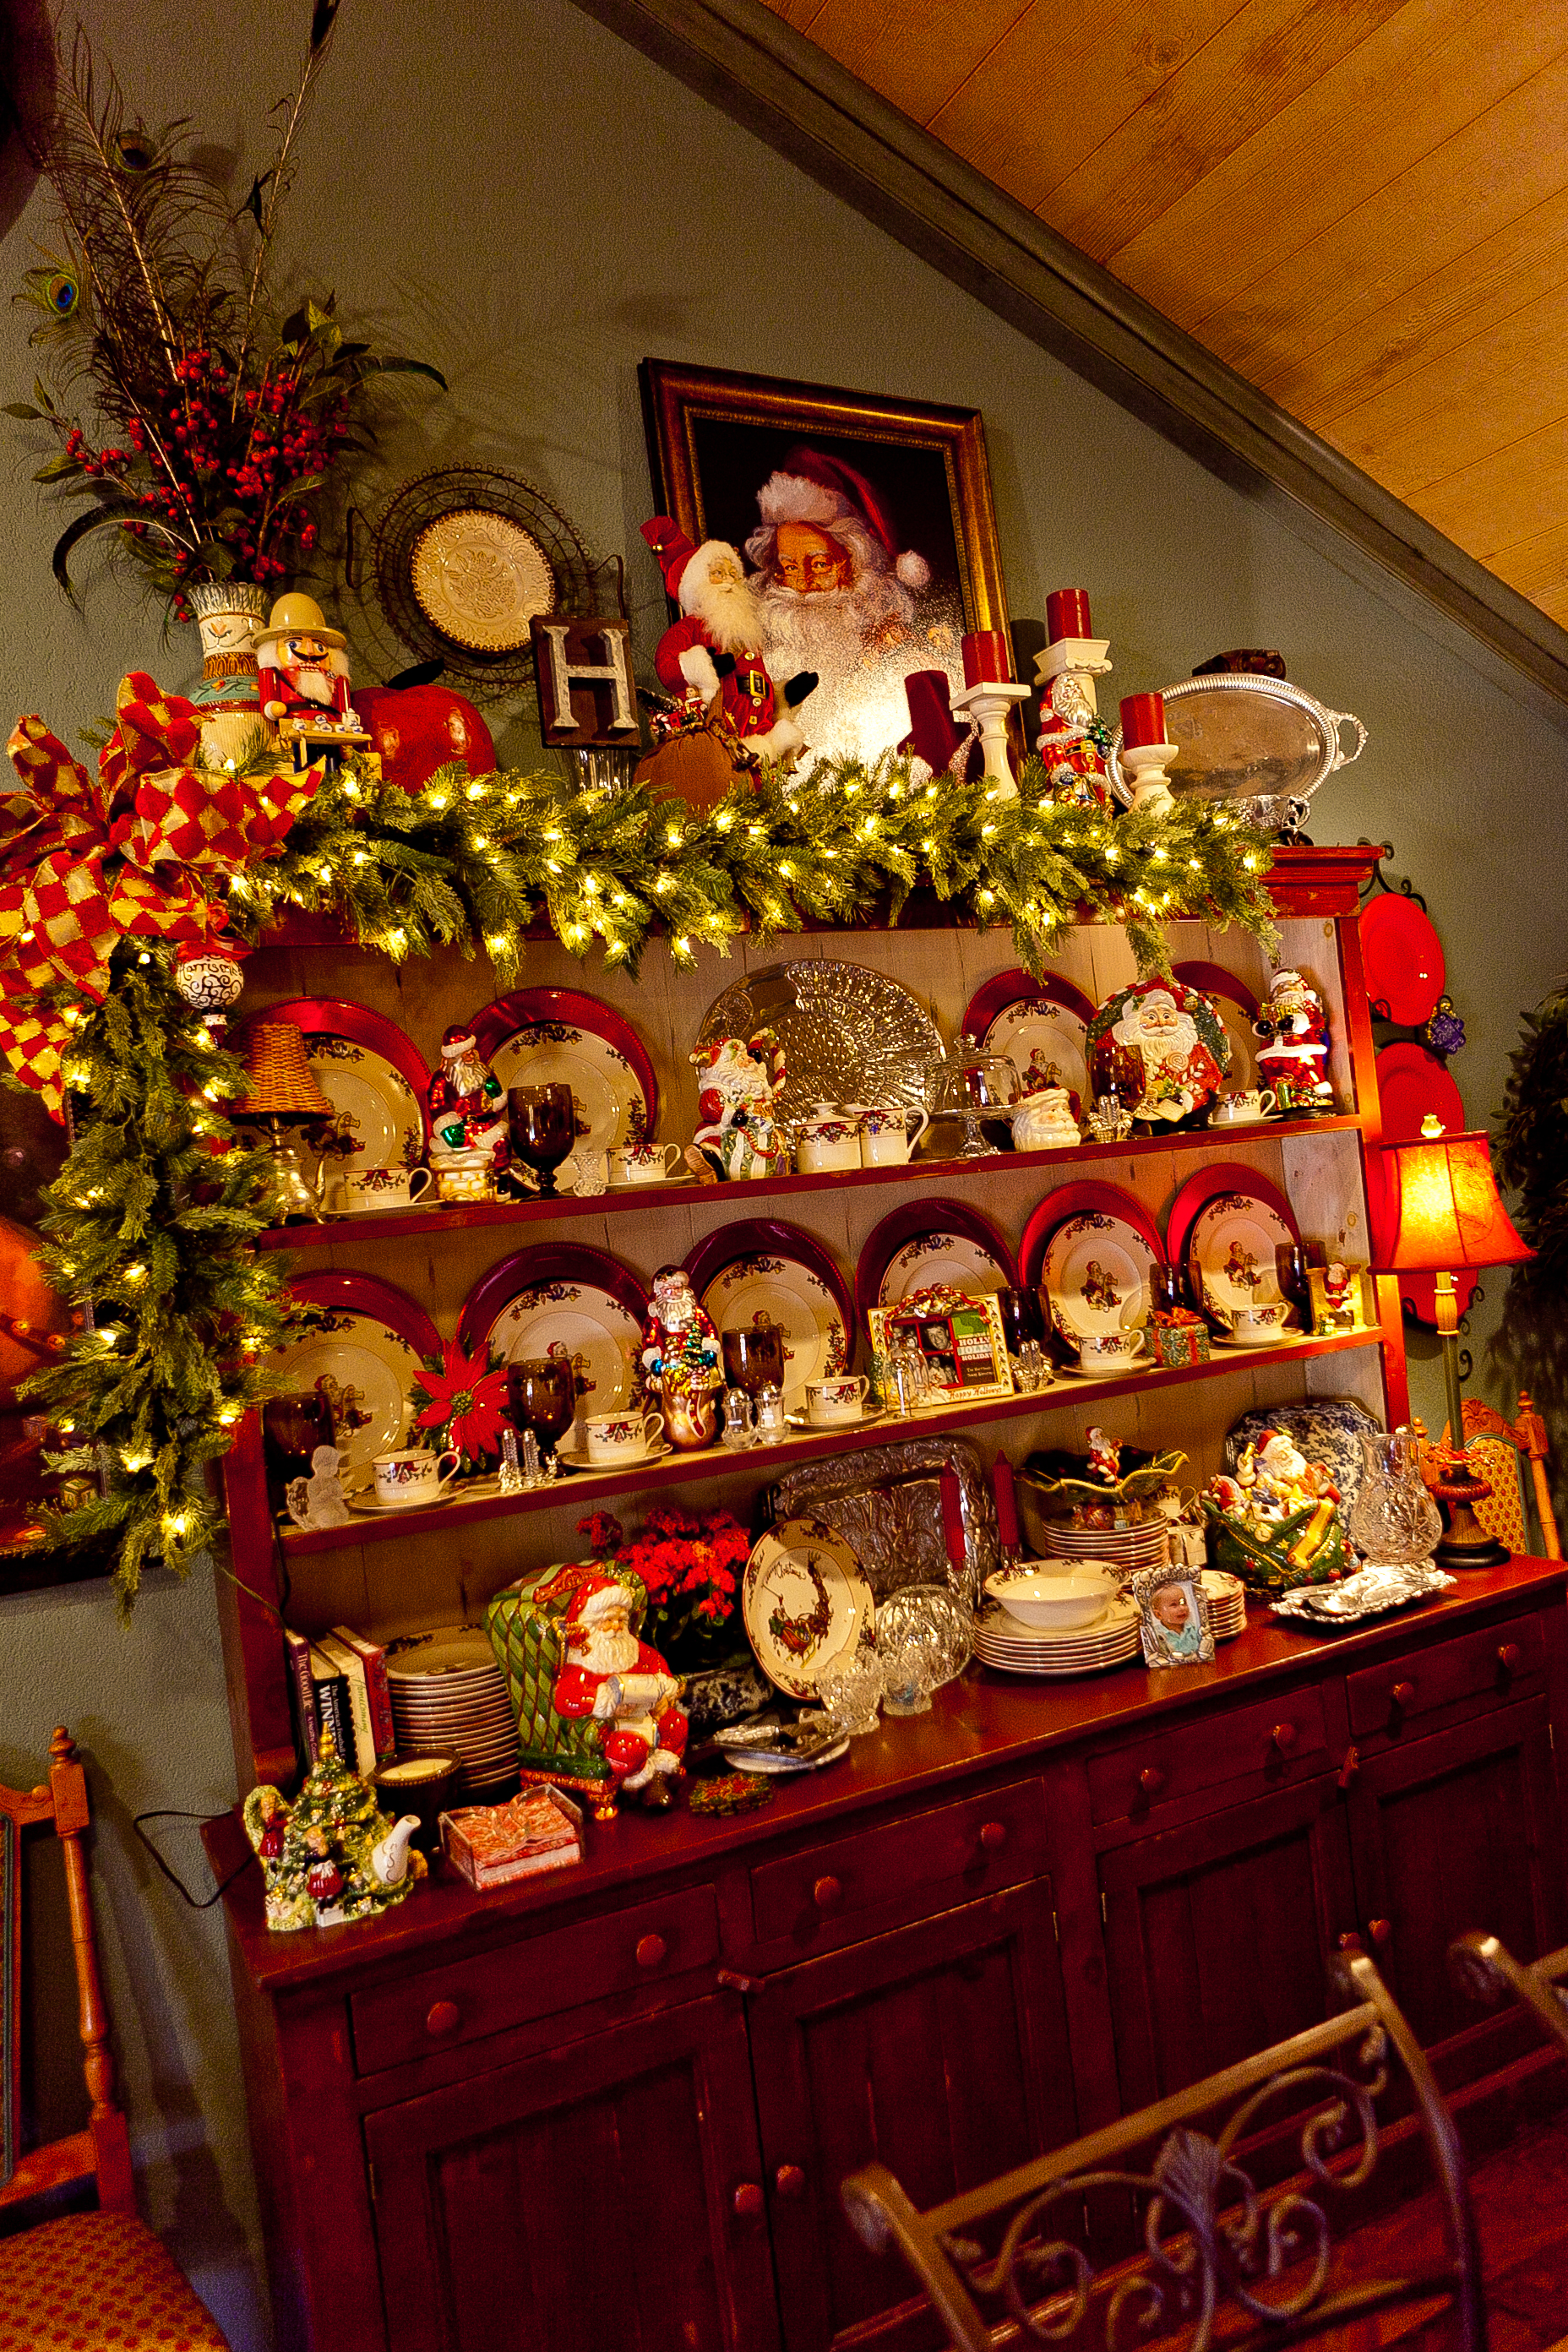 Show me more of a country french home decorated for for Home decorations for christmas